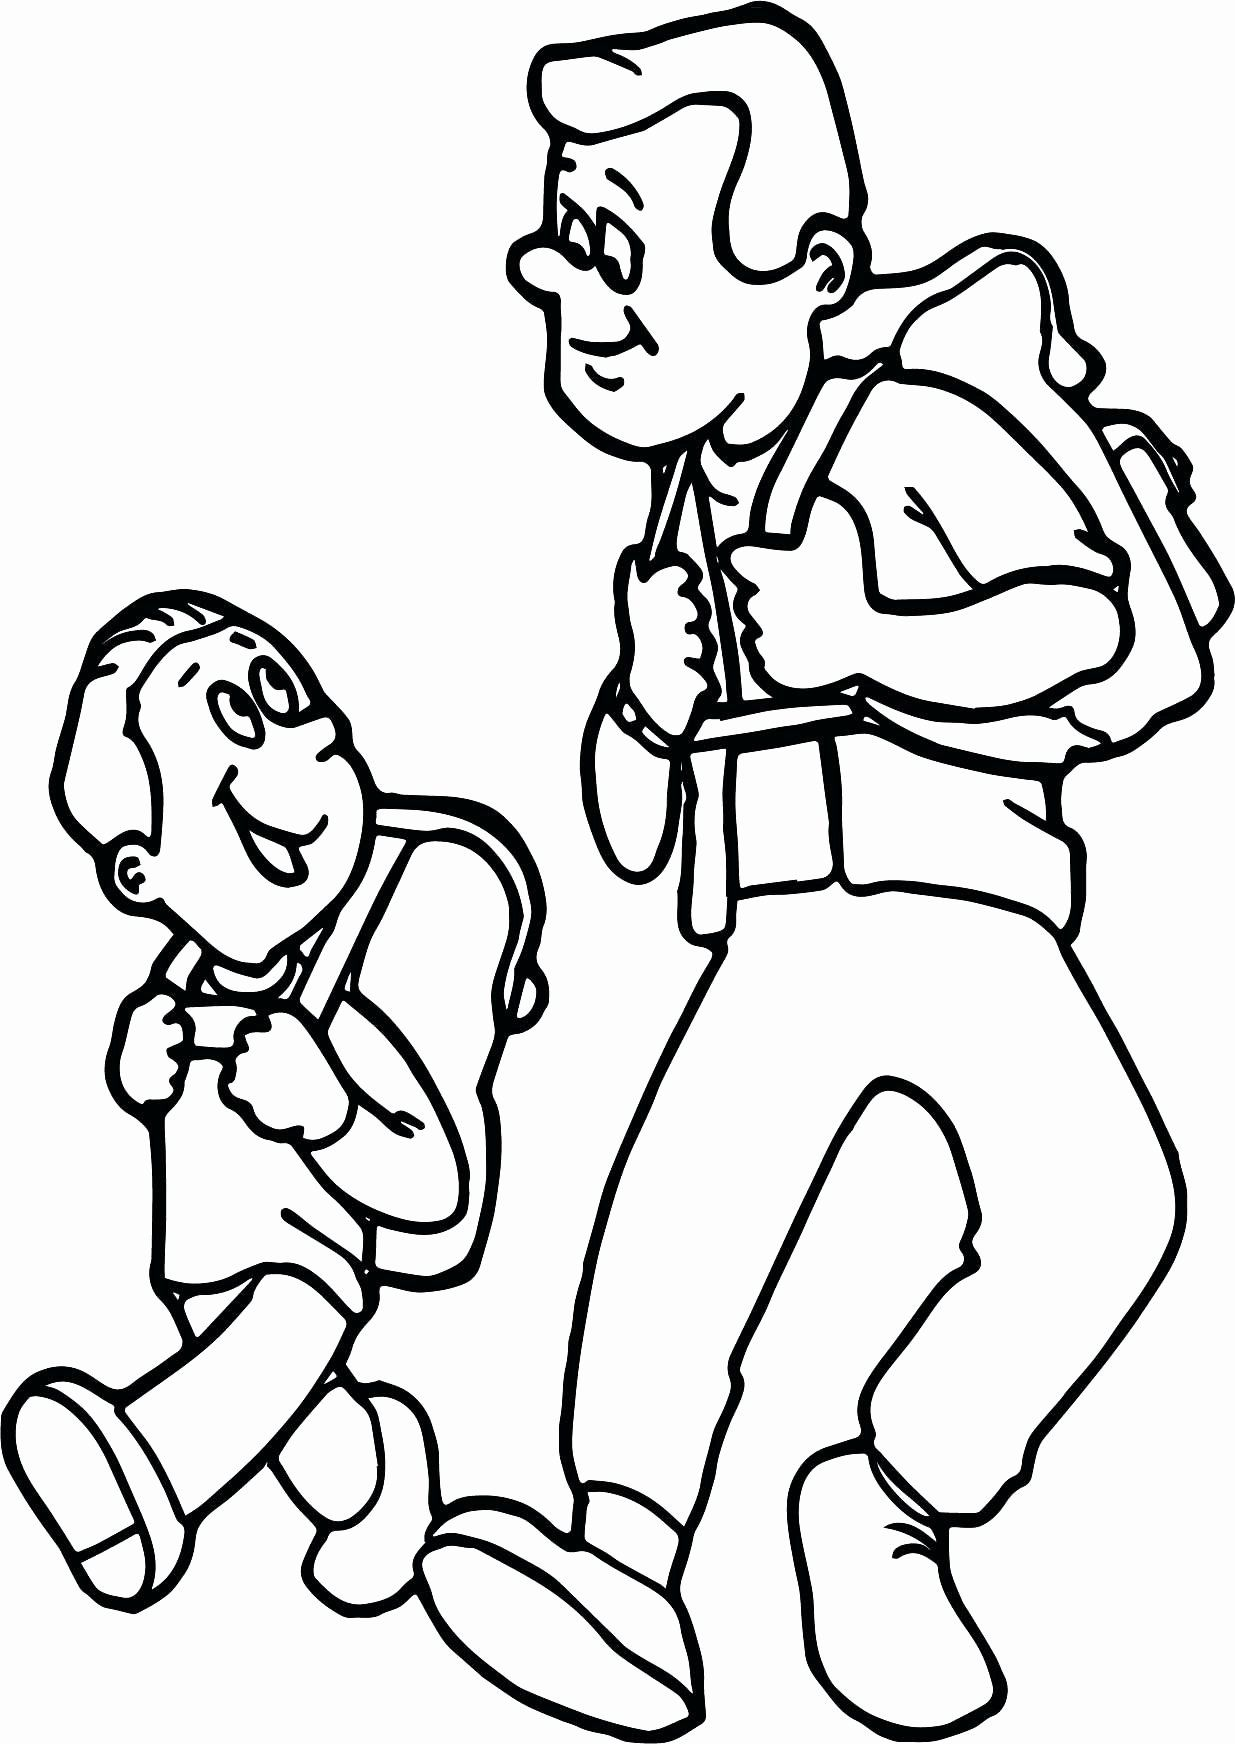 Father And Son Coloring Page Awesome Father And Son Coloring Pages At Getdrawings Camping Advice Coloring Pages Camping Trips